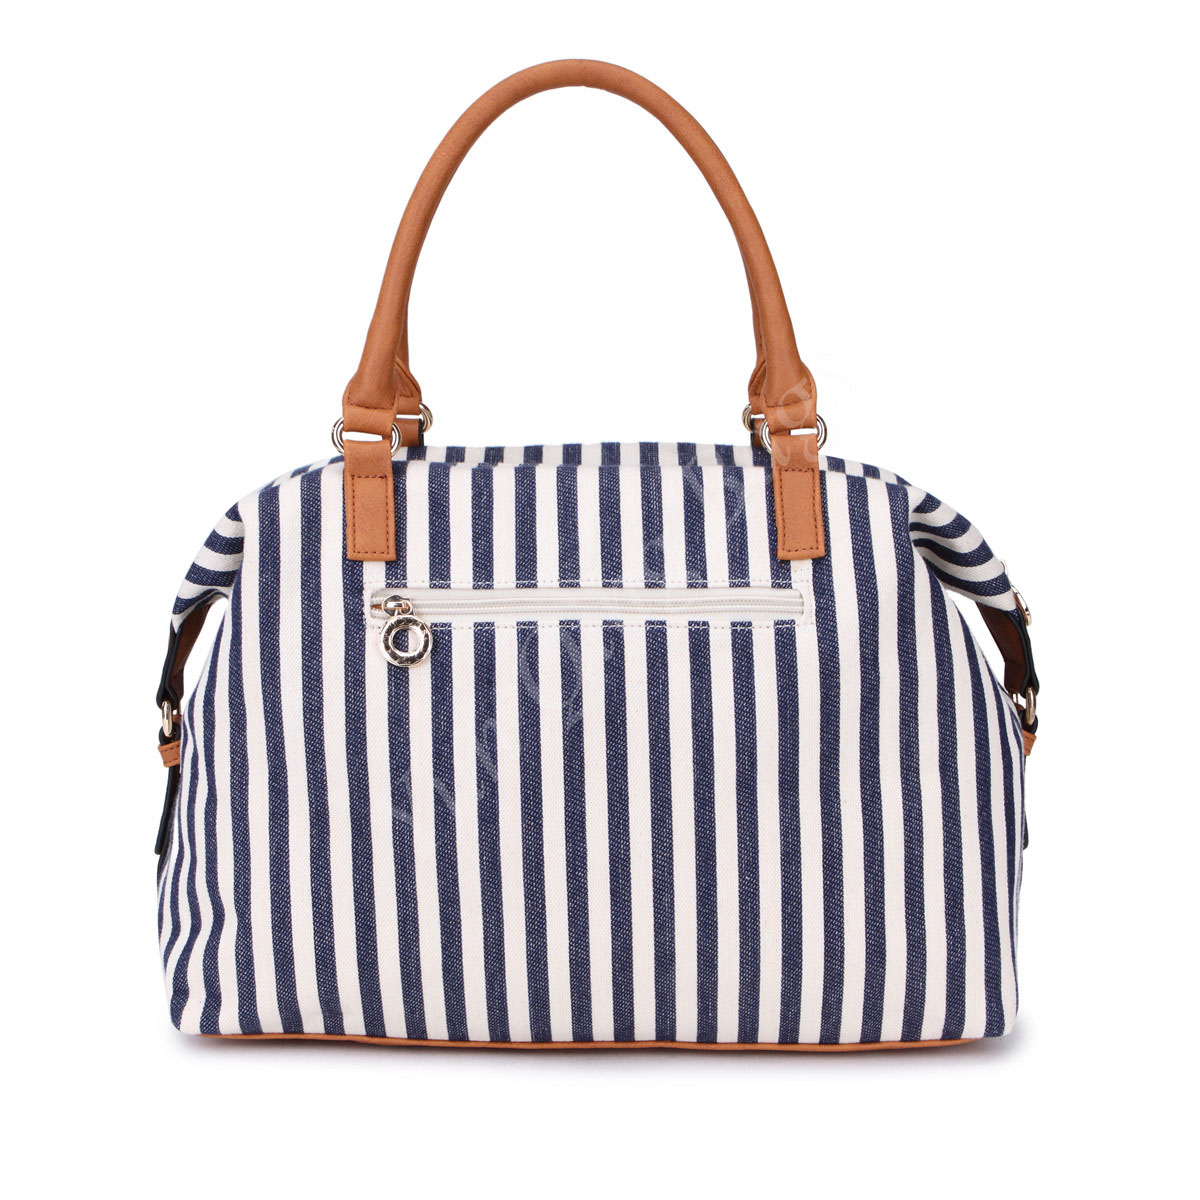 Printed Vertical Lines Fashion Ladies Handbag